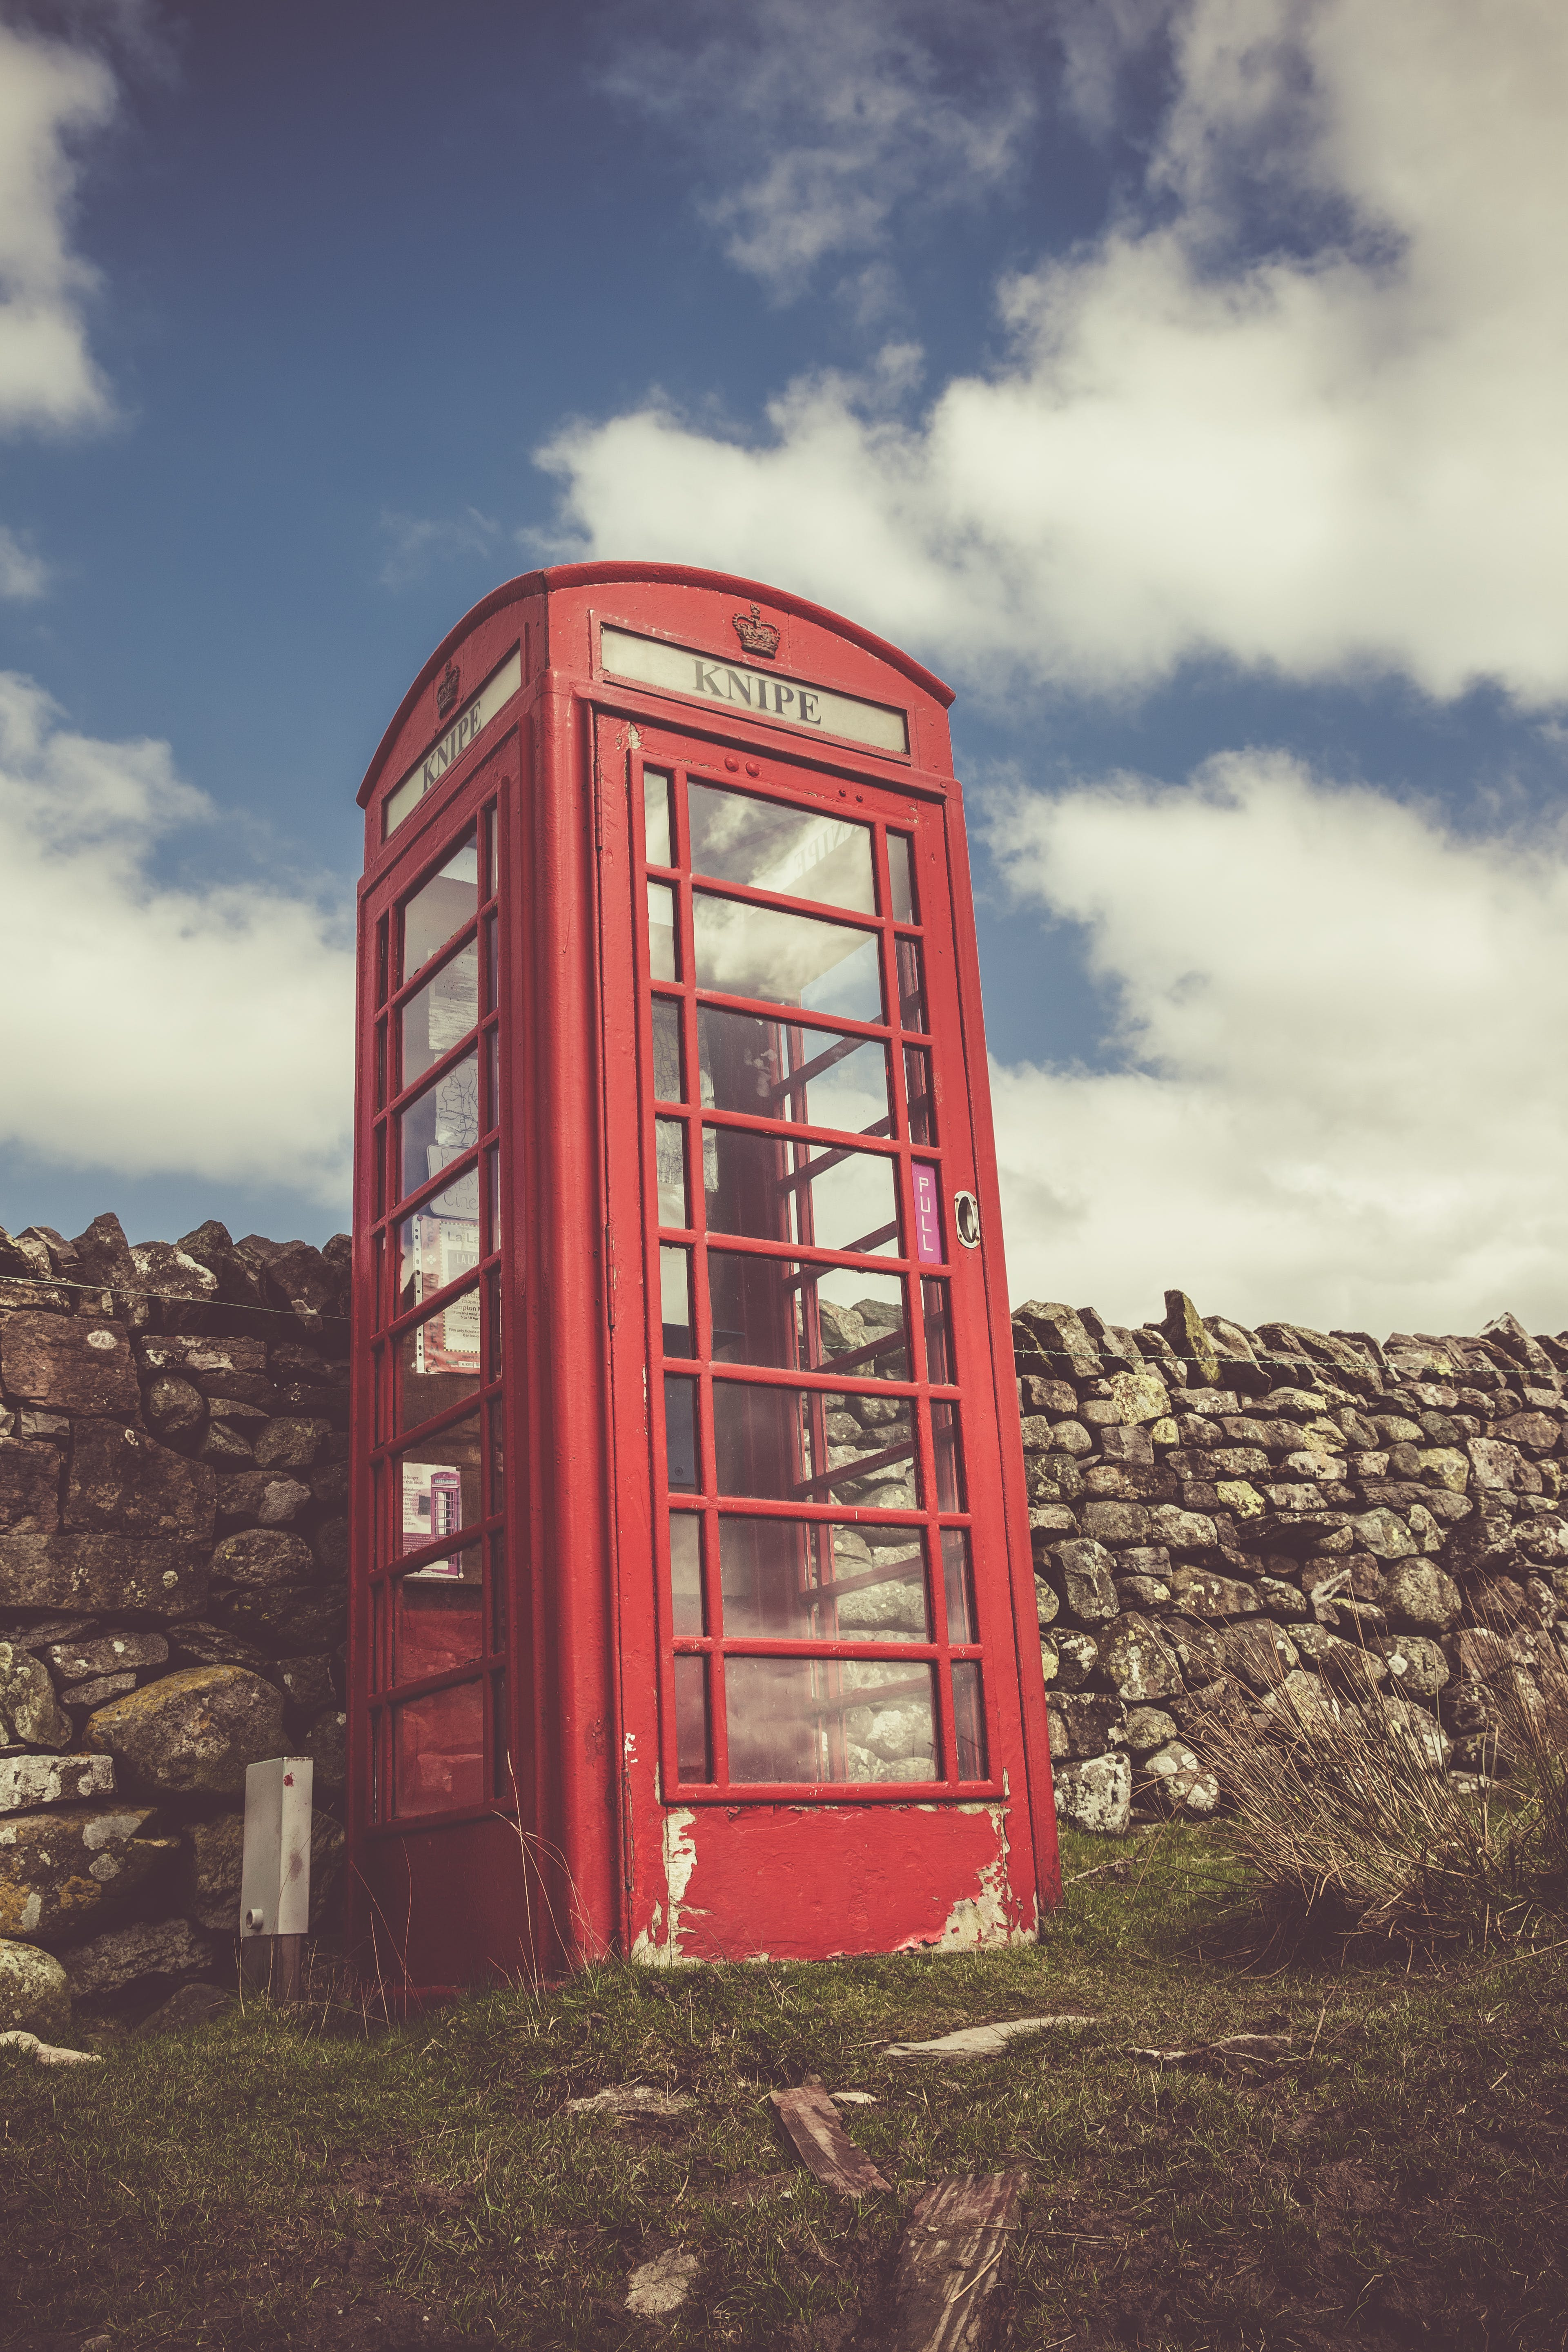 Red Knipe Telephone Booth